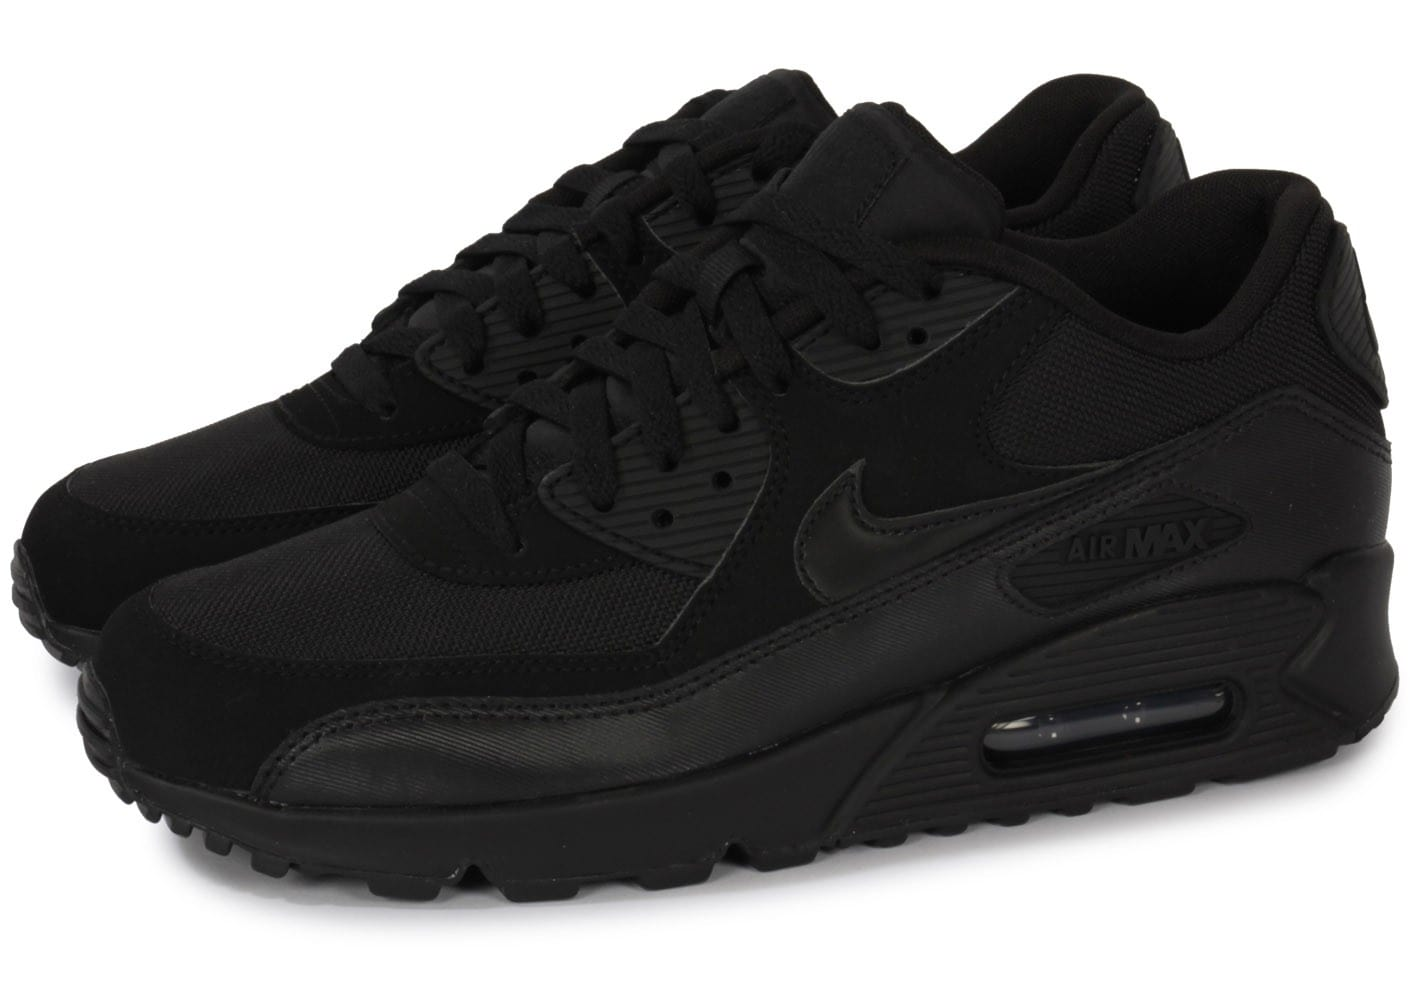 nike air max 90 noire chaussures homme chausport. Black Bedroom Furniture Sets. Home Design Ideas